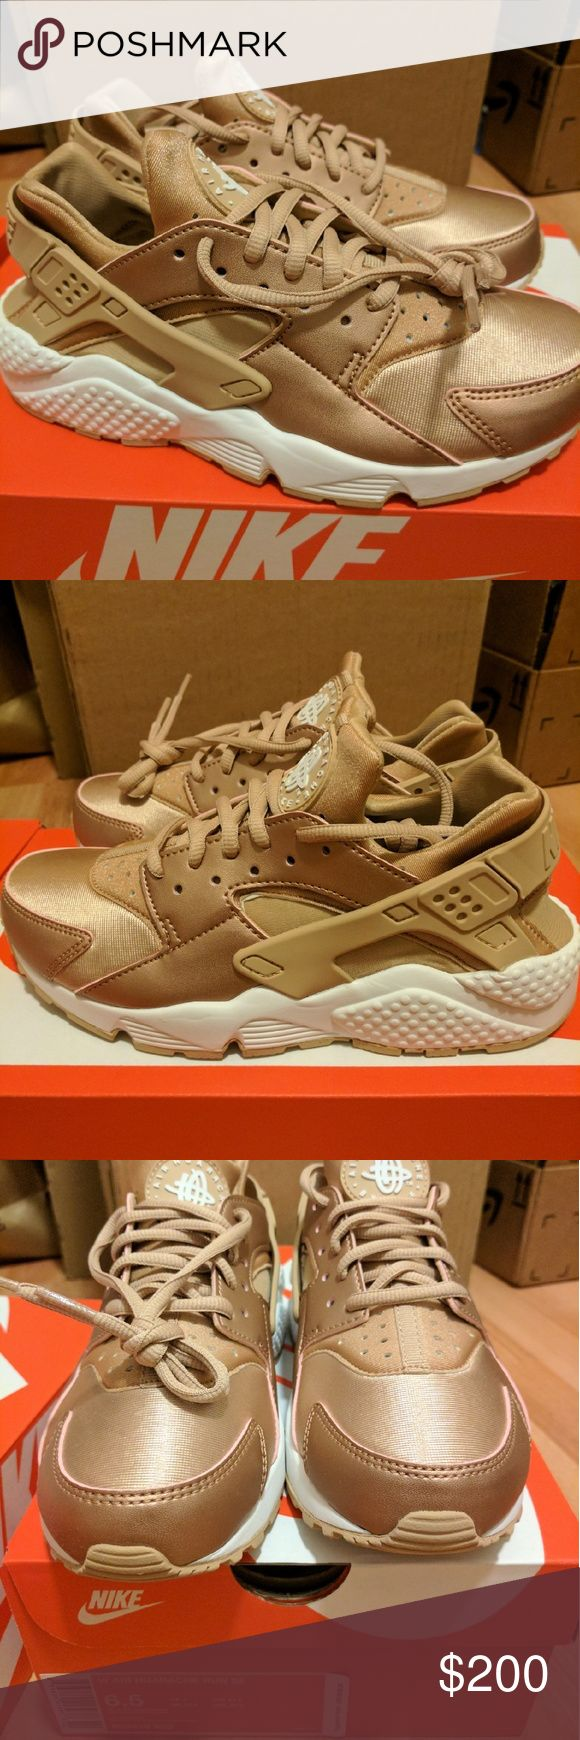 NEW NIKE HUARACHE SE ROSE GOLD LIMITED EDITION Nike women air huarache run se limited edition  Metallic red bronze rose gold color way  ***RARE AND SOLD OUT EVERYWHERE***  Size 6.5  Deadstock.  100% authentic.  Will be shipped with original box and protection box.  No trades.  Price is firm.  No returns for incorrect size, size is as described in description  Check out my account for more shoes and sizes!  Tags:Adidas, Jordan, Nike, retro, boost, Yeezy, ultra boost, prime knit, supreme, make…